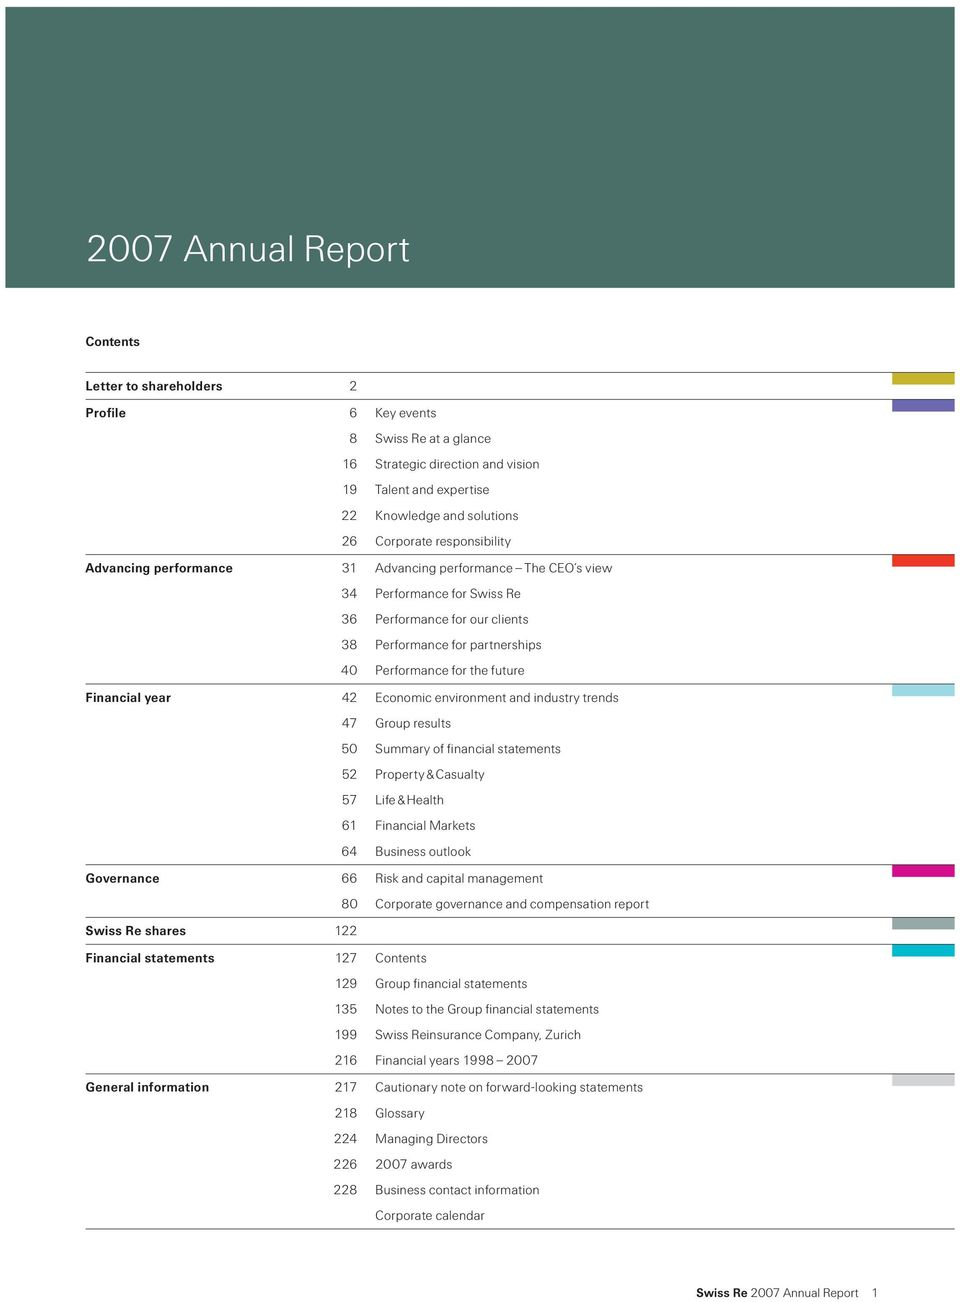 Financial year 42 Economic environment and industry trends 47 Group results 50 Summary of financial statements 52 Property & Casualty 57 Life & Health 61 Financial Markets 64 Business outlook